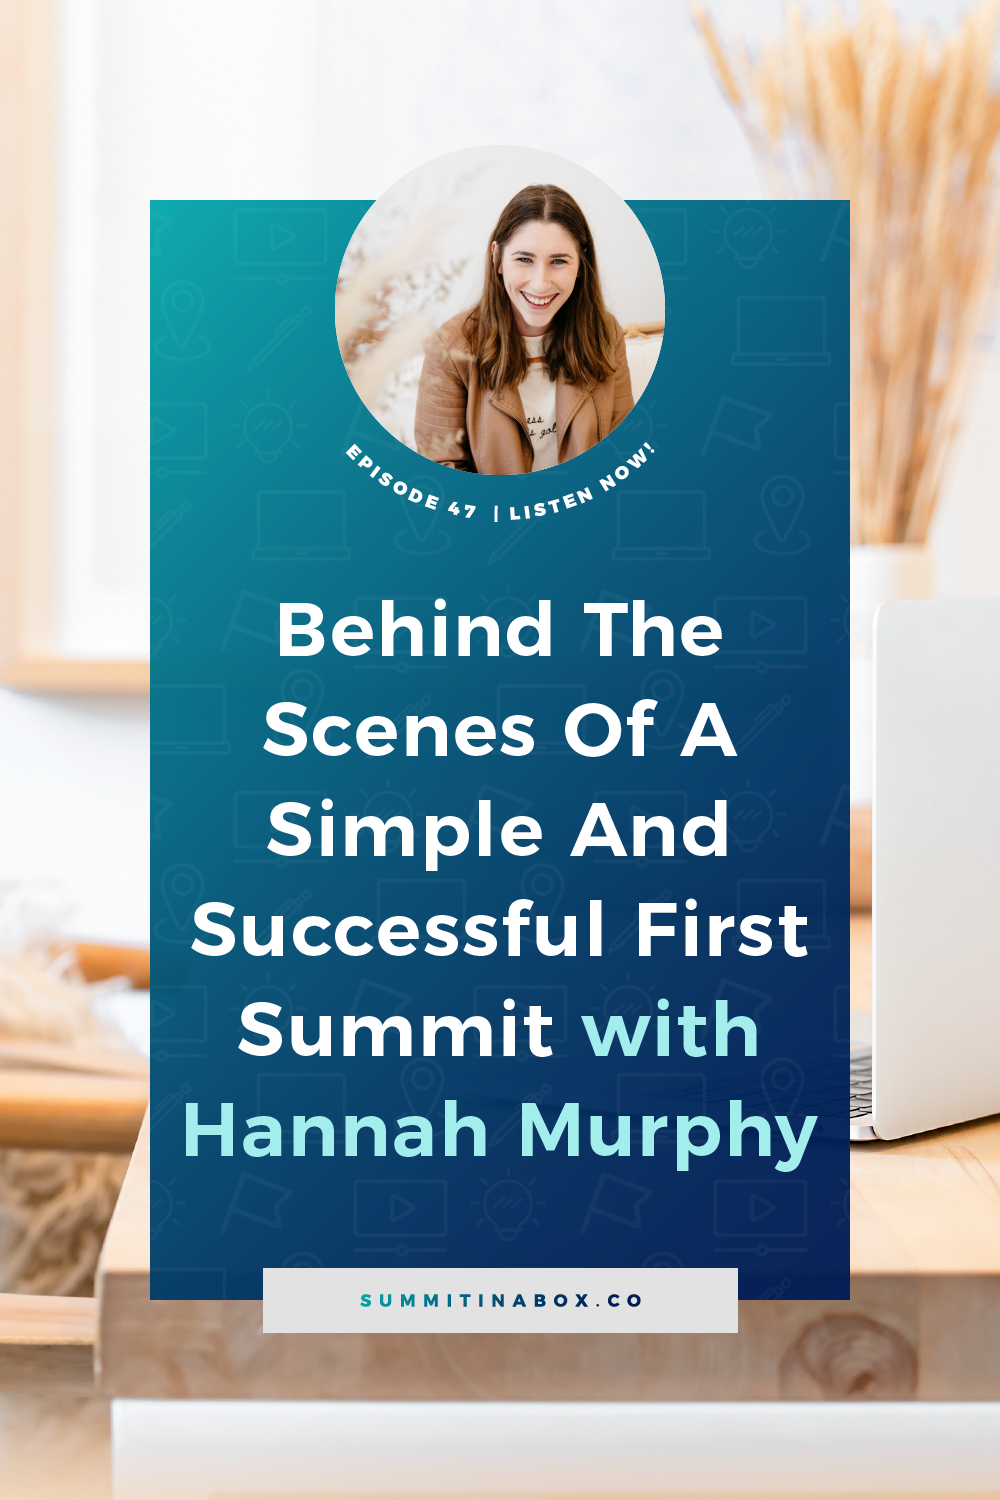 Let's go behind the scenes with a first-time virtual summit host. We'll chat through her experience, results, tech choices, and everything in between.